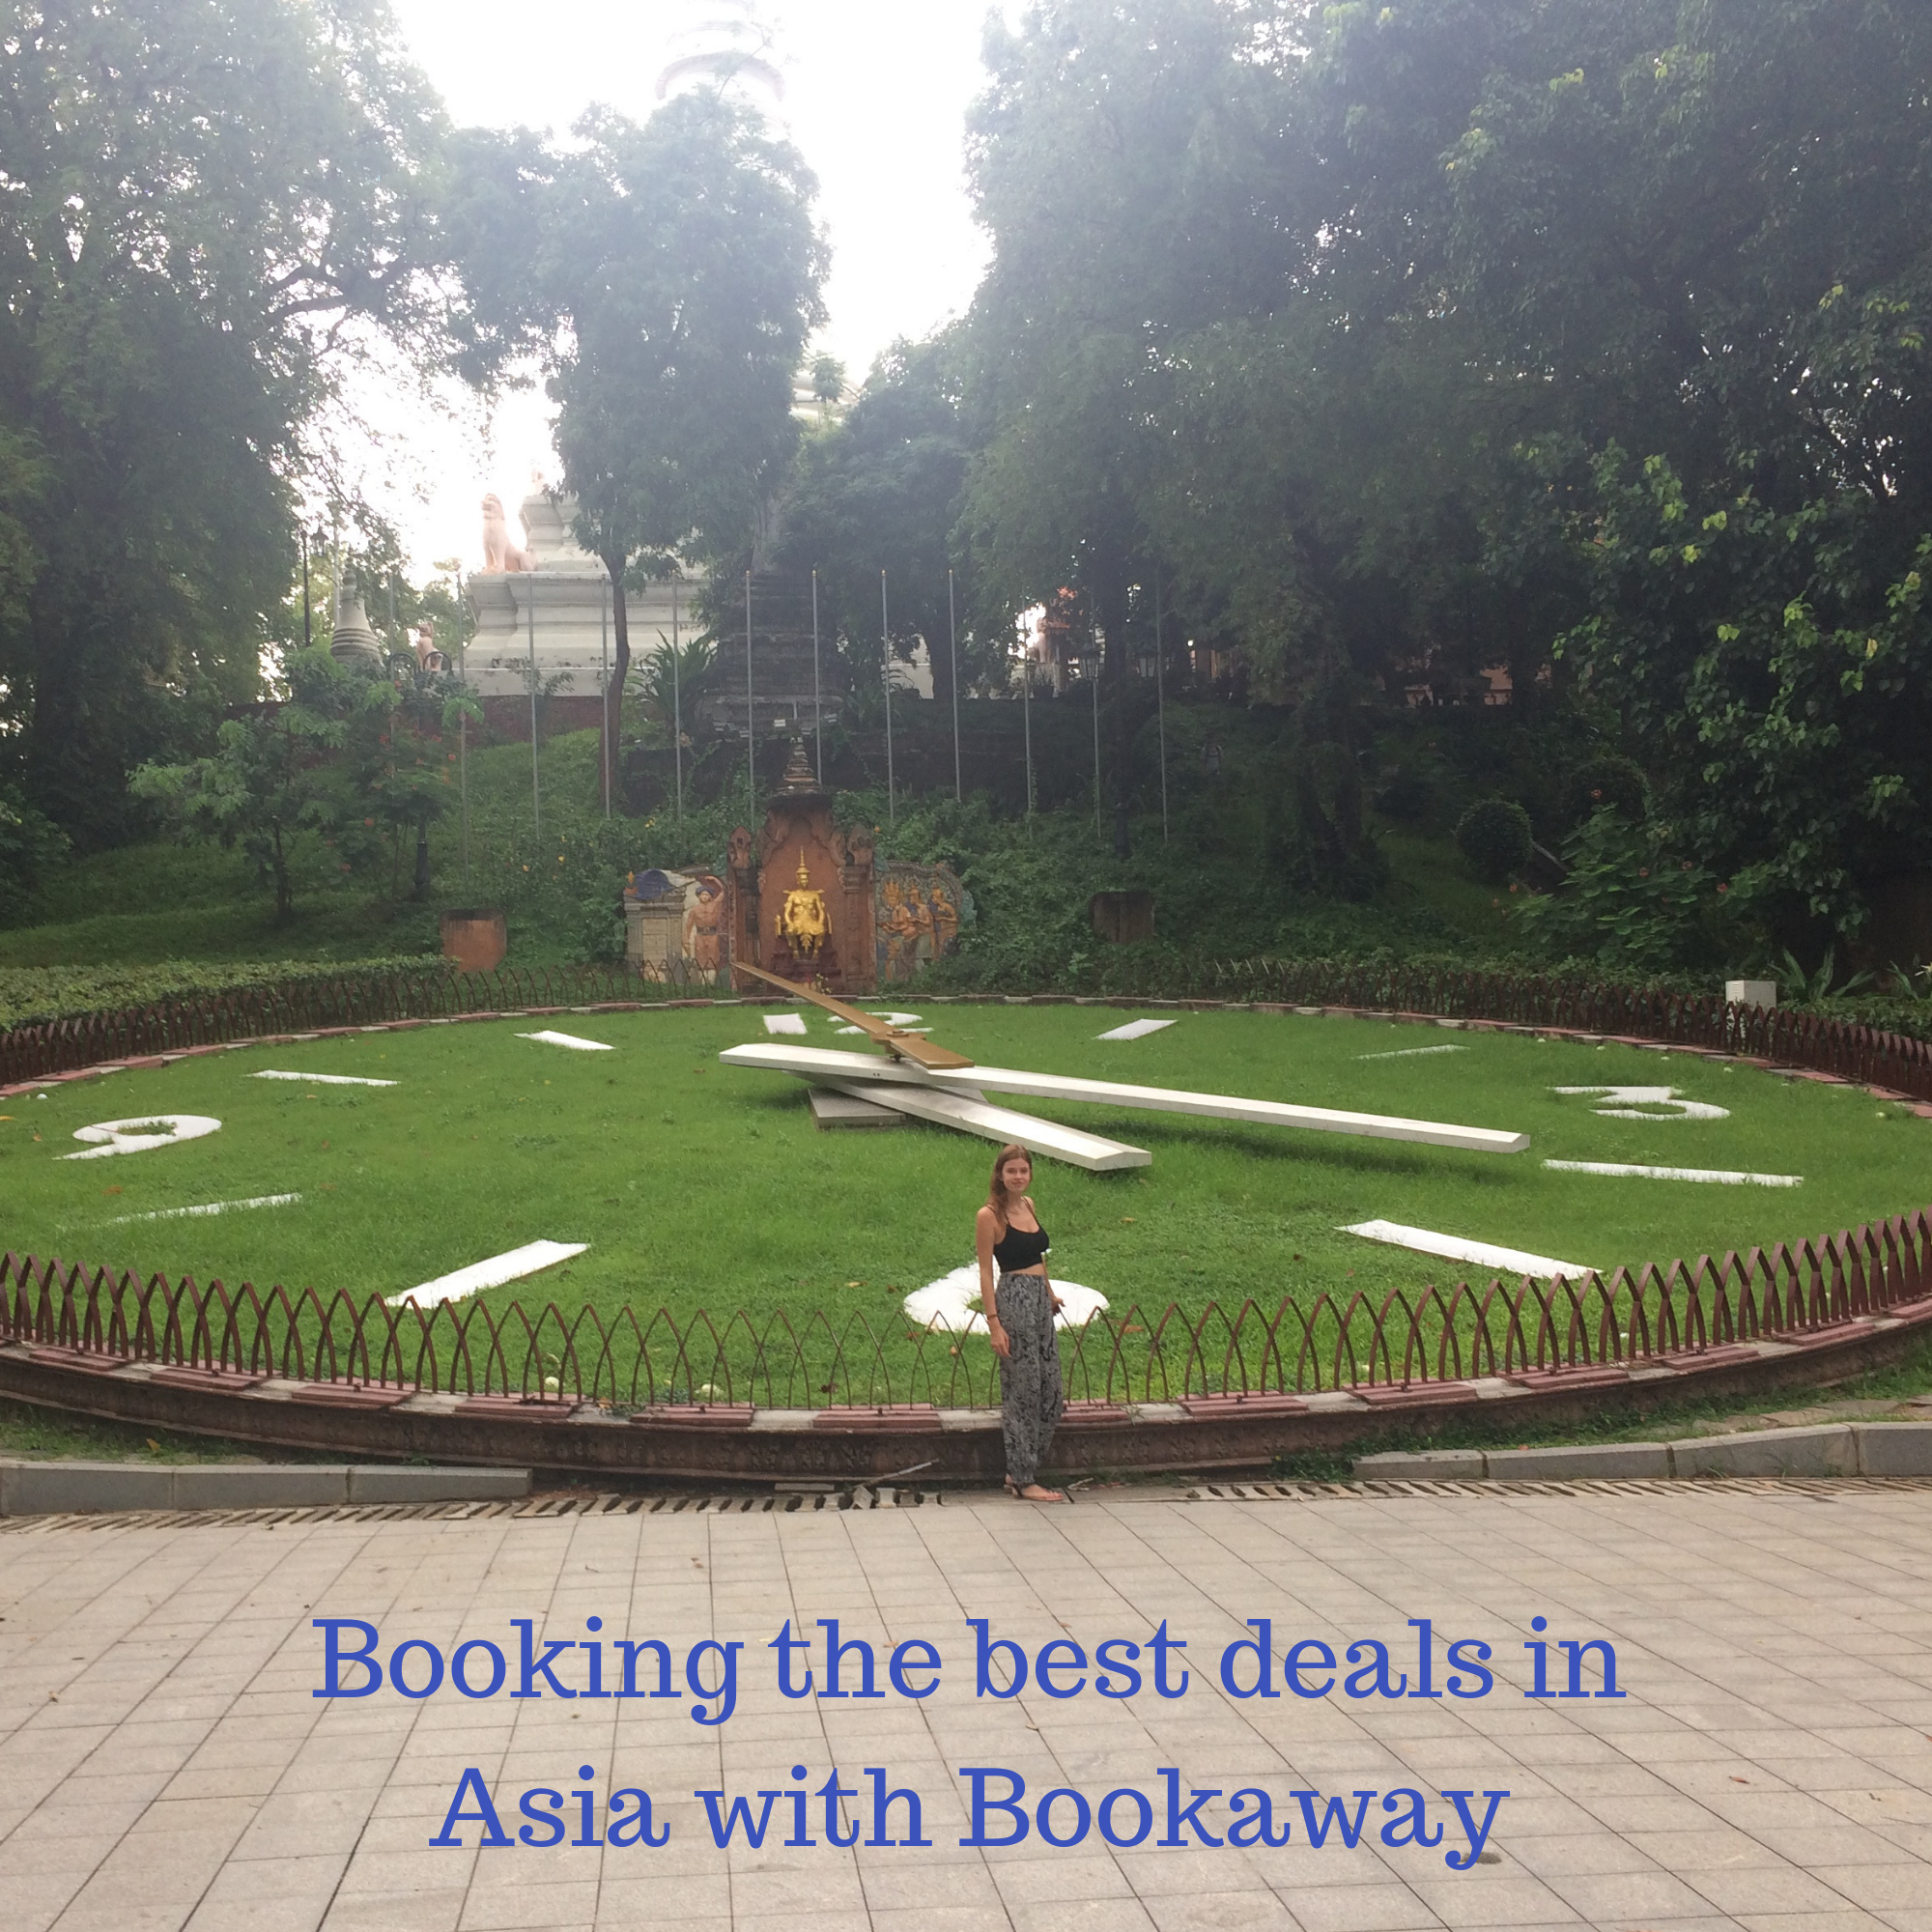 Booking the best deals in Asia with Bookaway